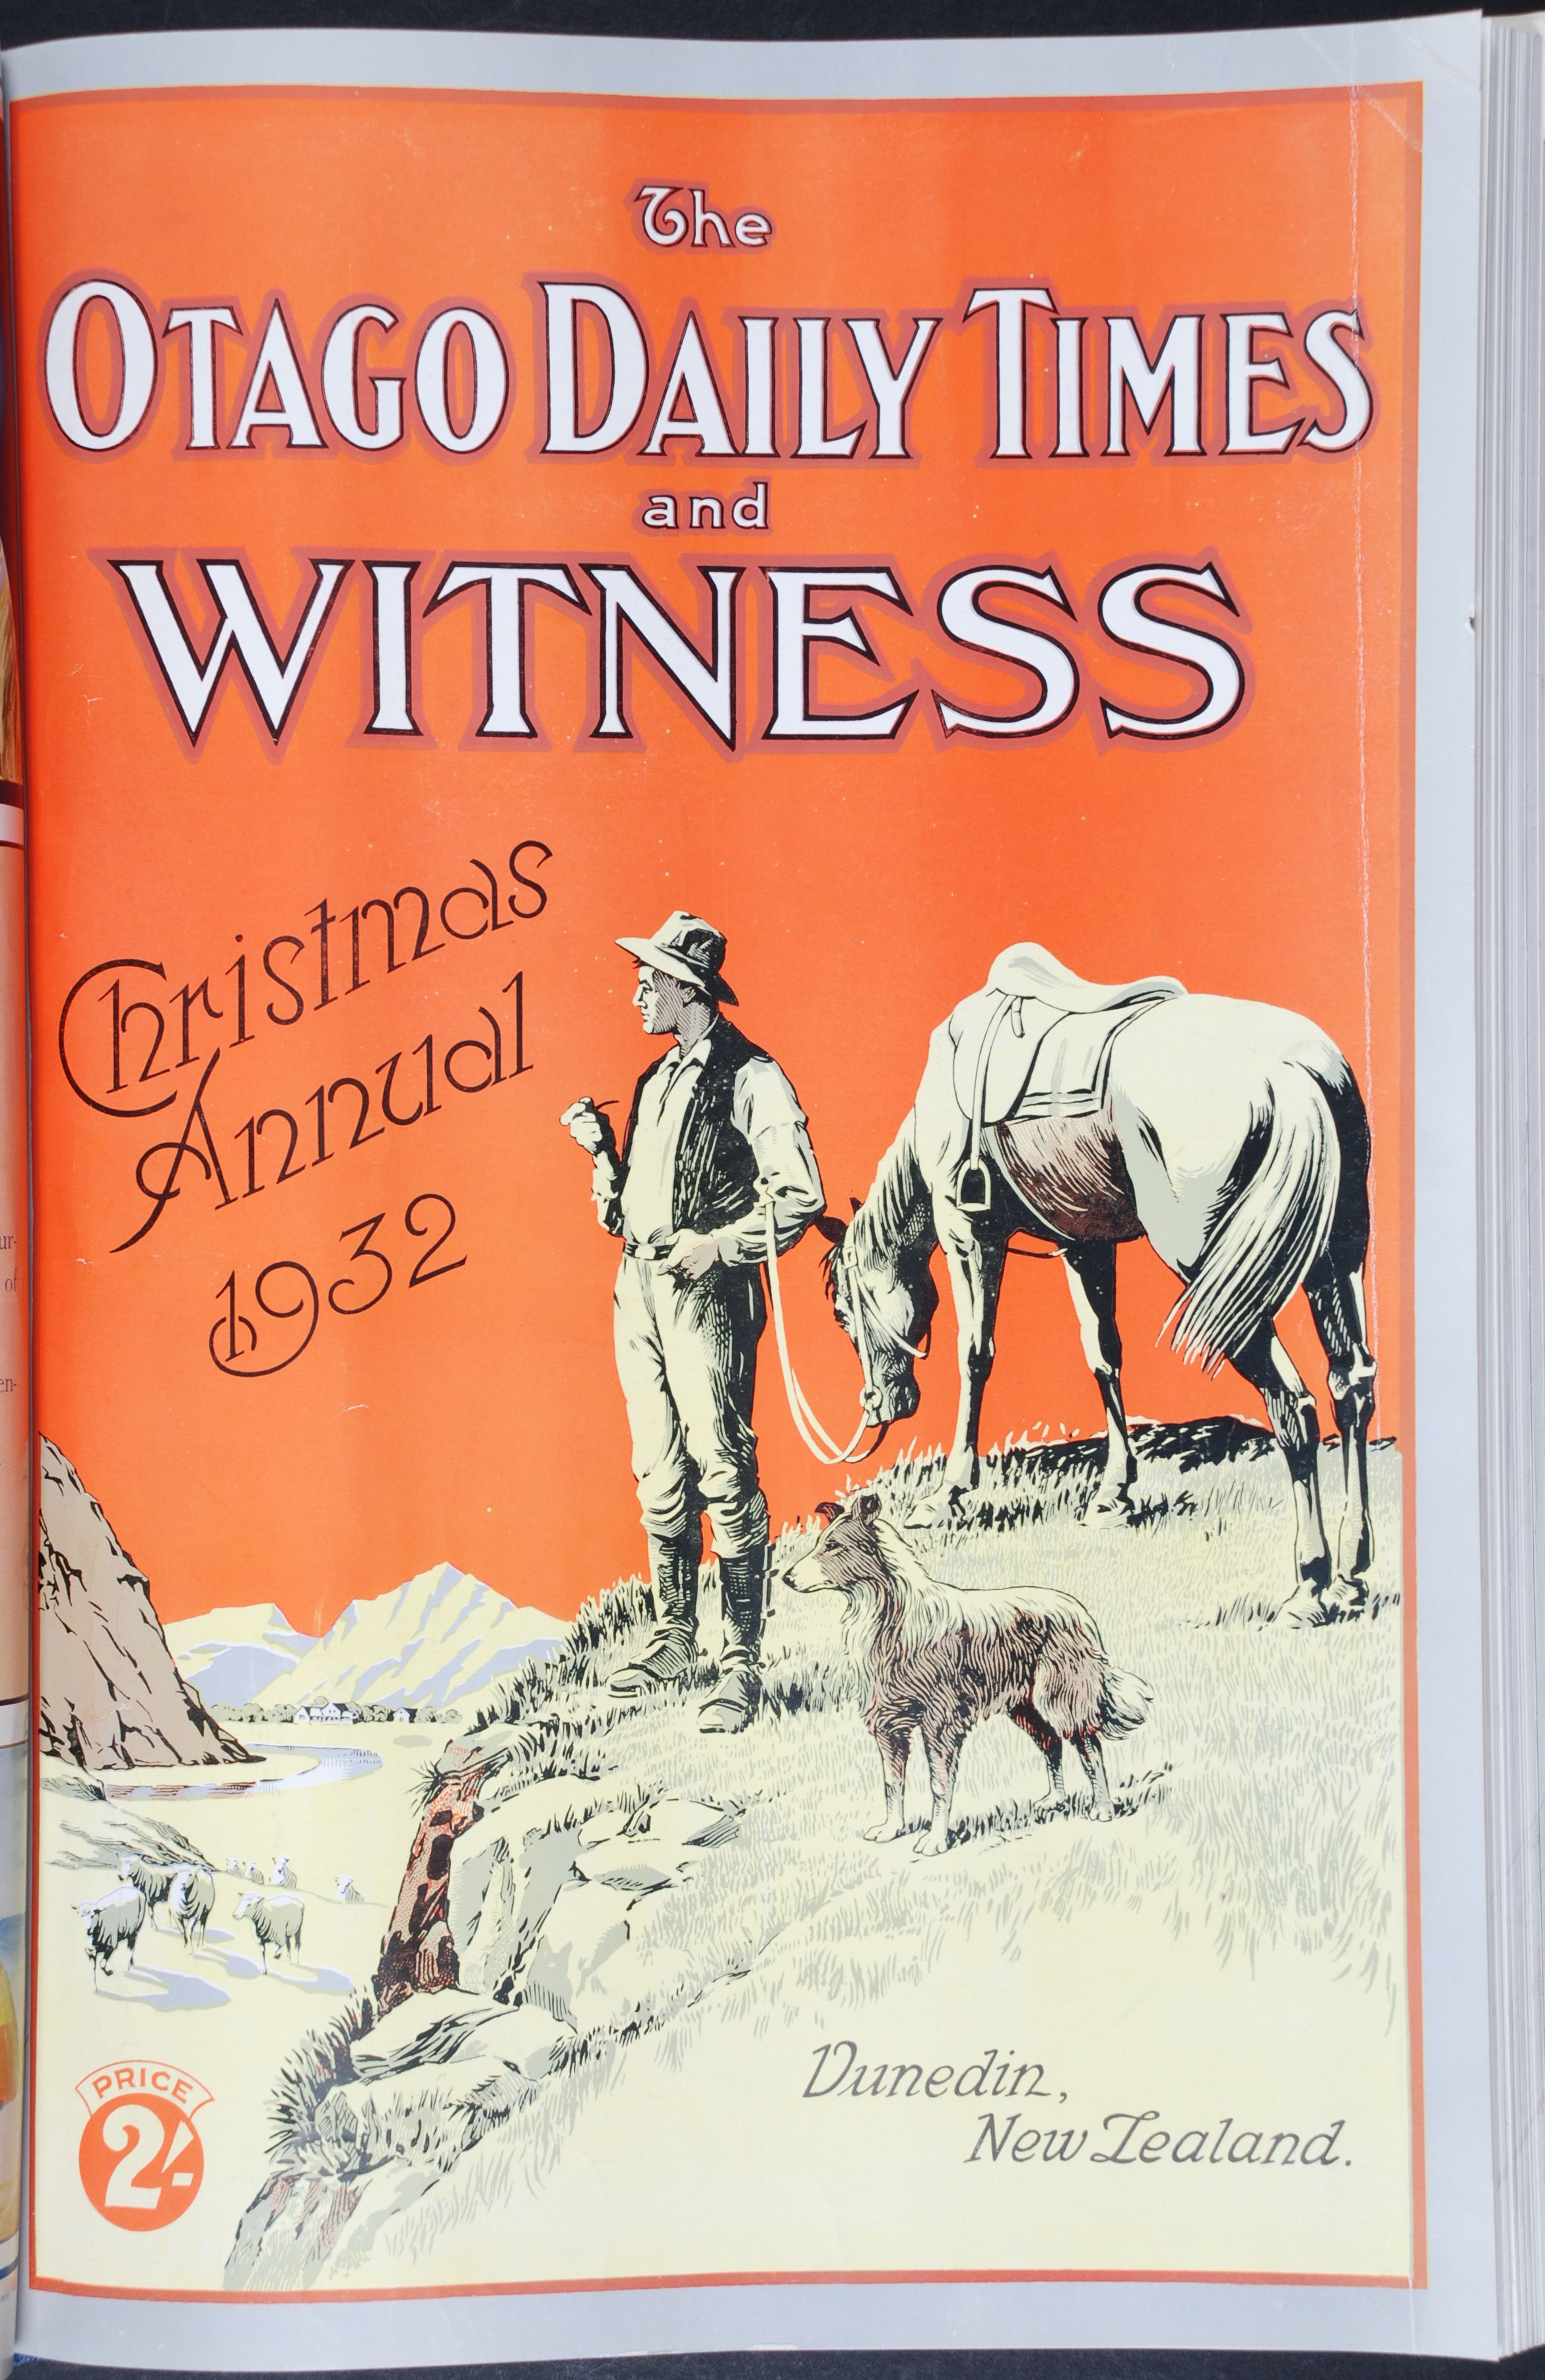 The Otago Daily Times & Witness. Christmas Number, 1932.